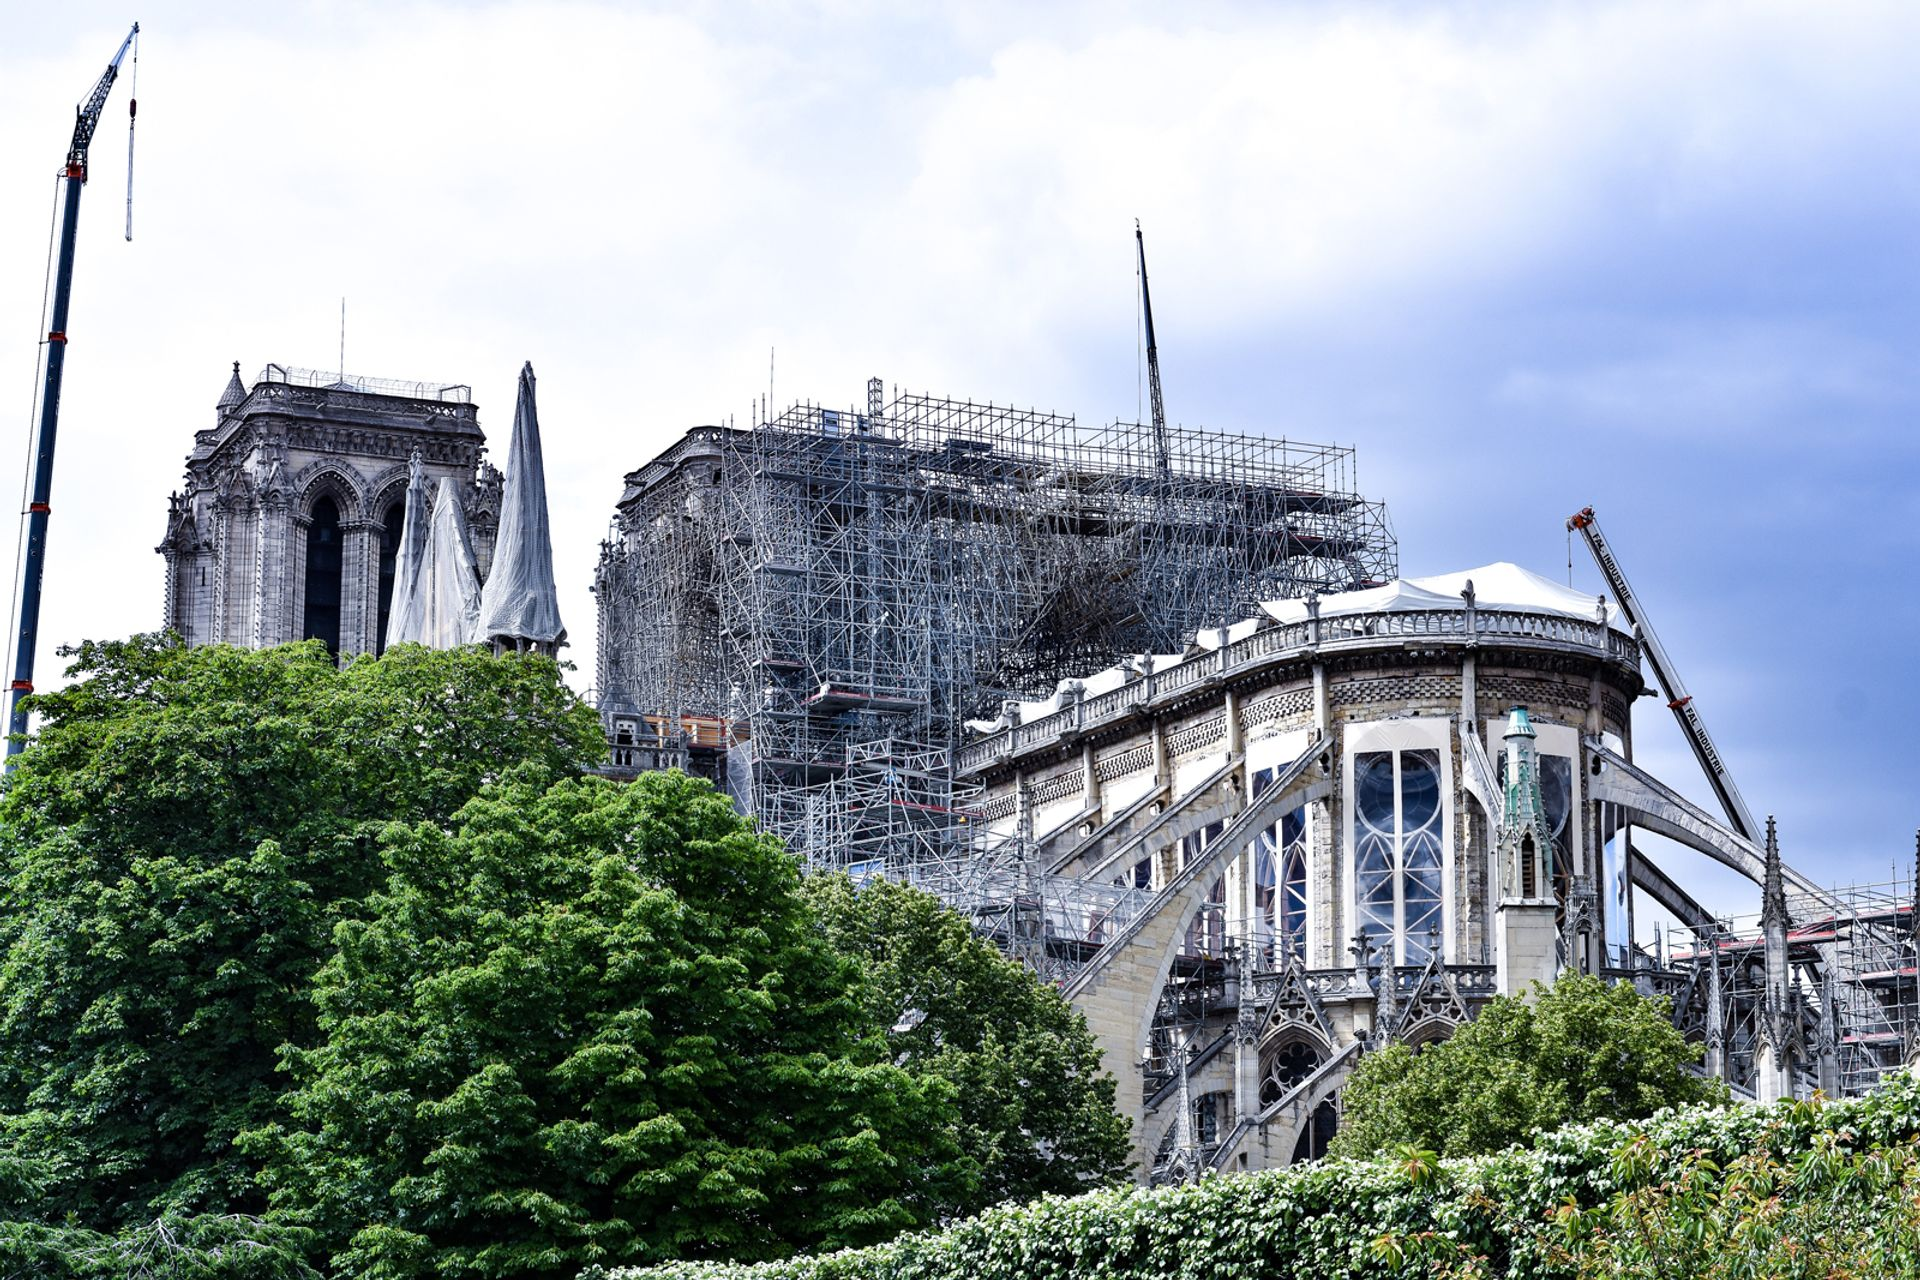 The cathedral of Notre Dame a few weeks after the fire in 2019 © Tayla Bundschuh